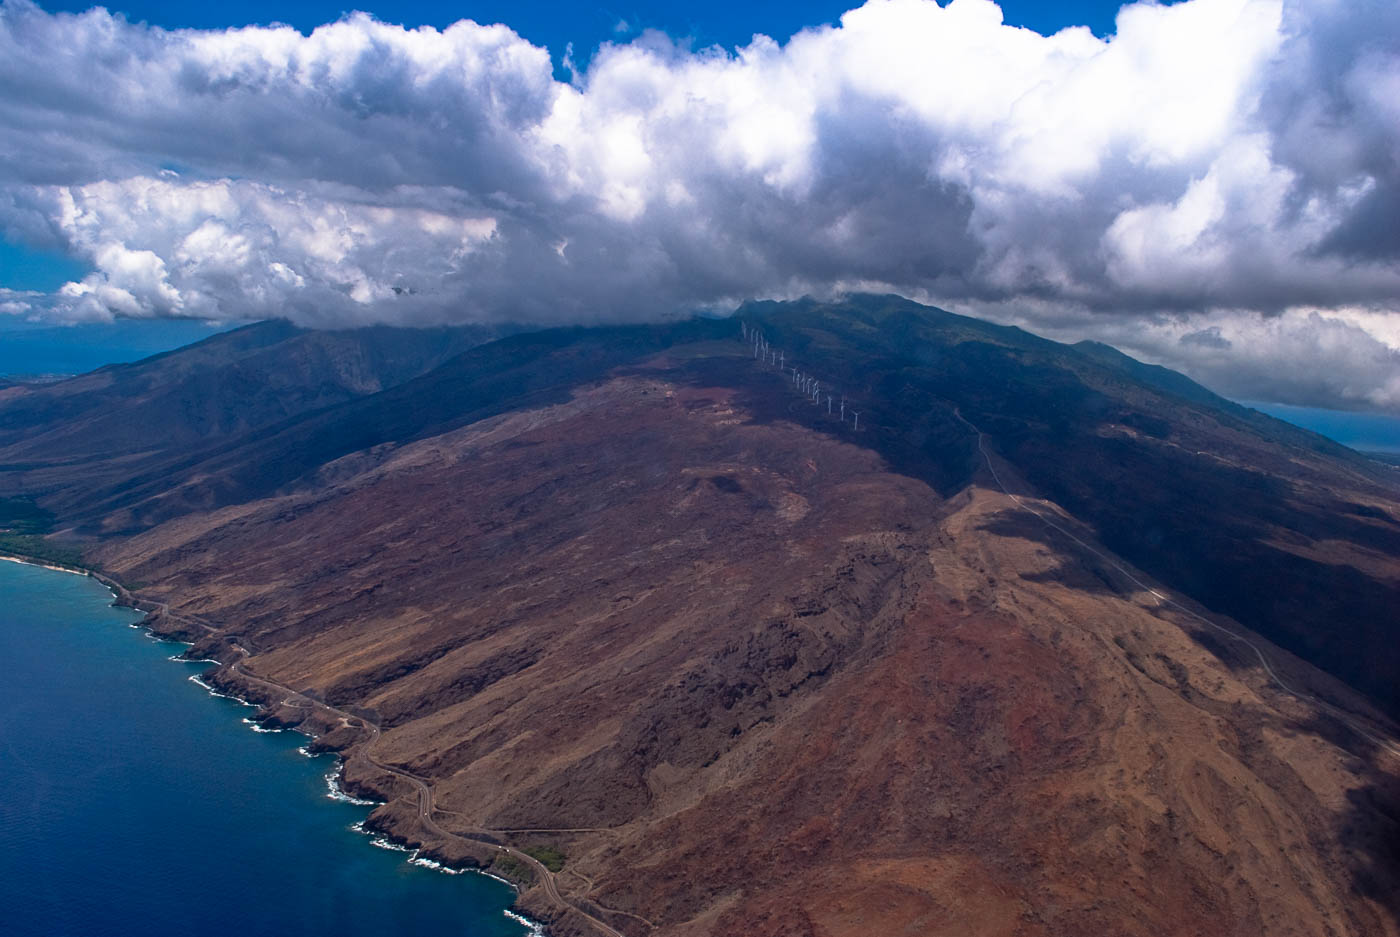 Over McGregor Point, Maui, Hawai'I | Pono Images